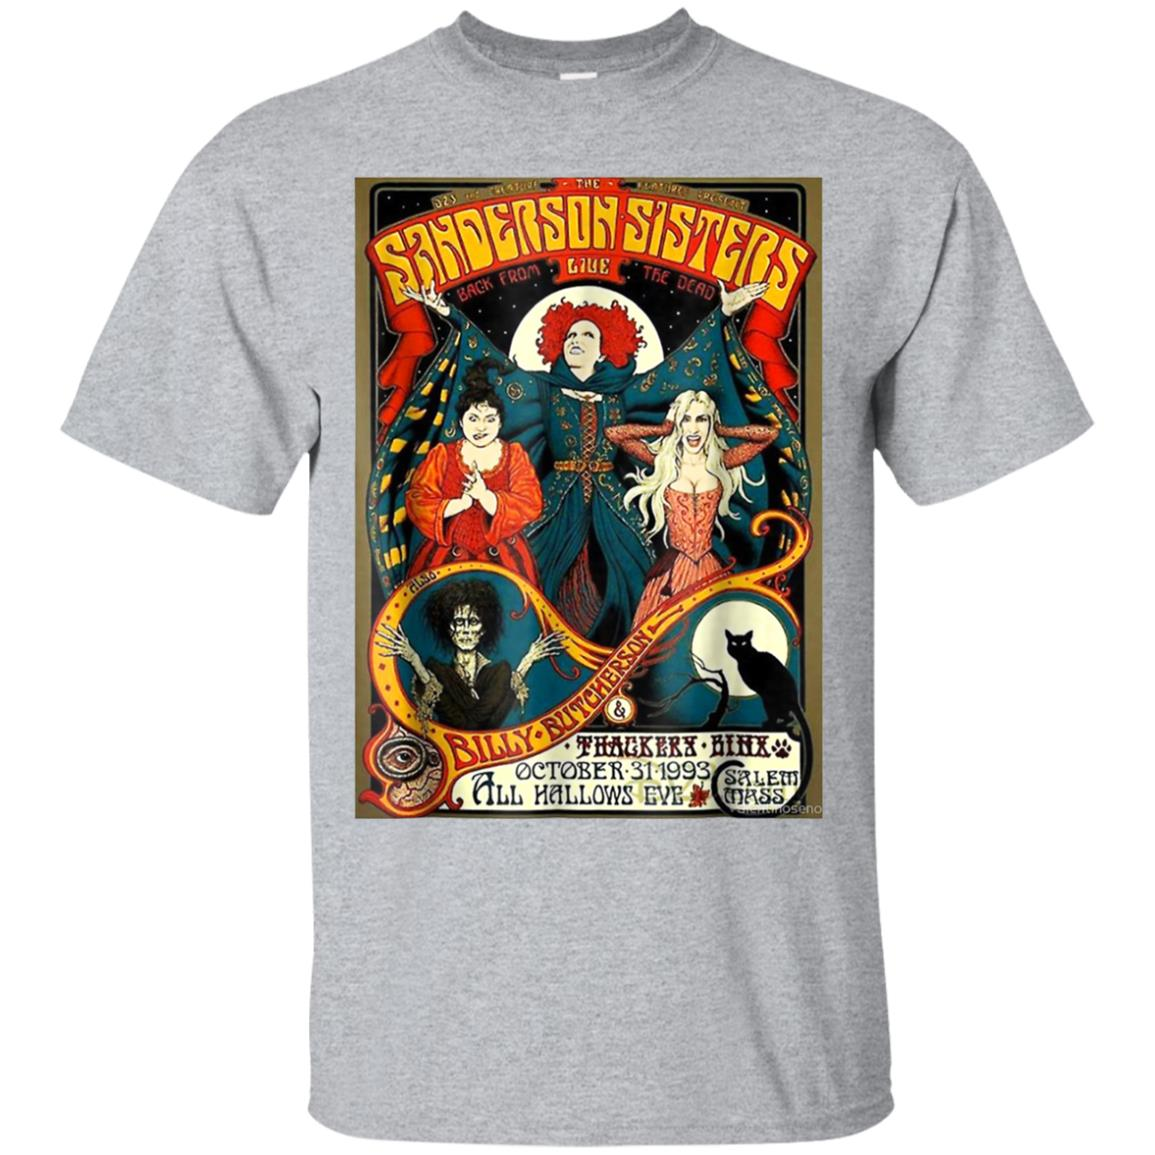 i'm the fourth sanderson sister t-shirt 99promocode